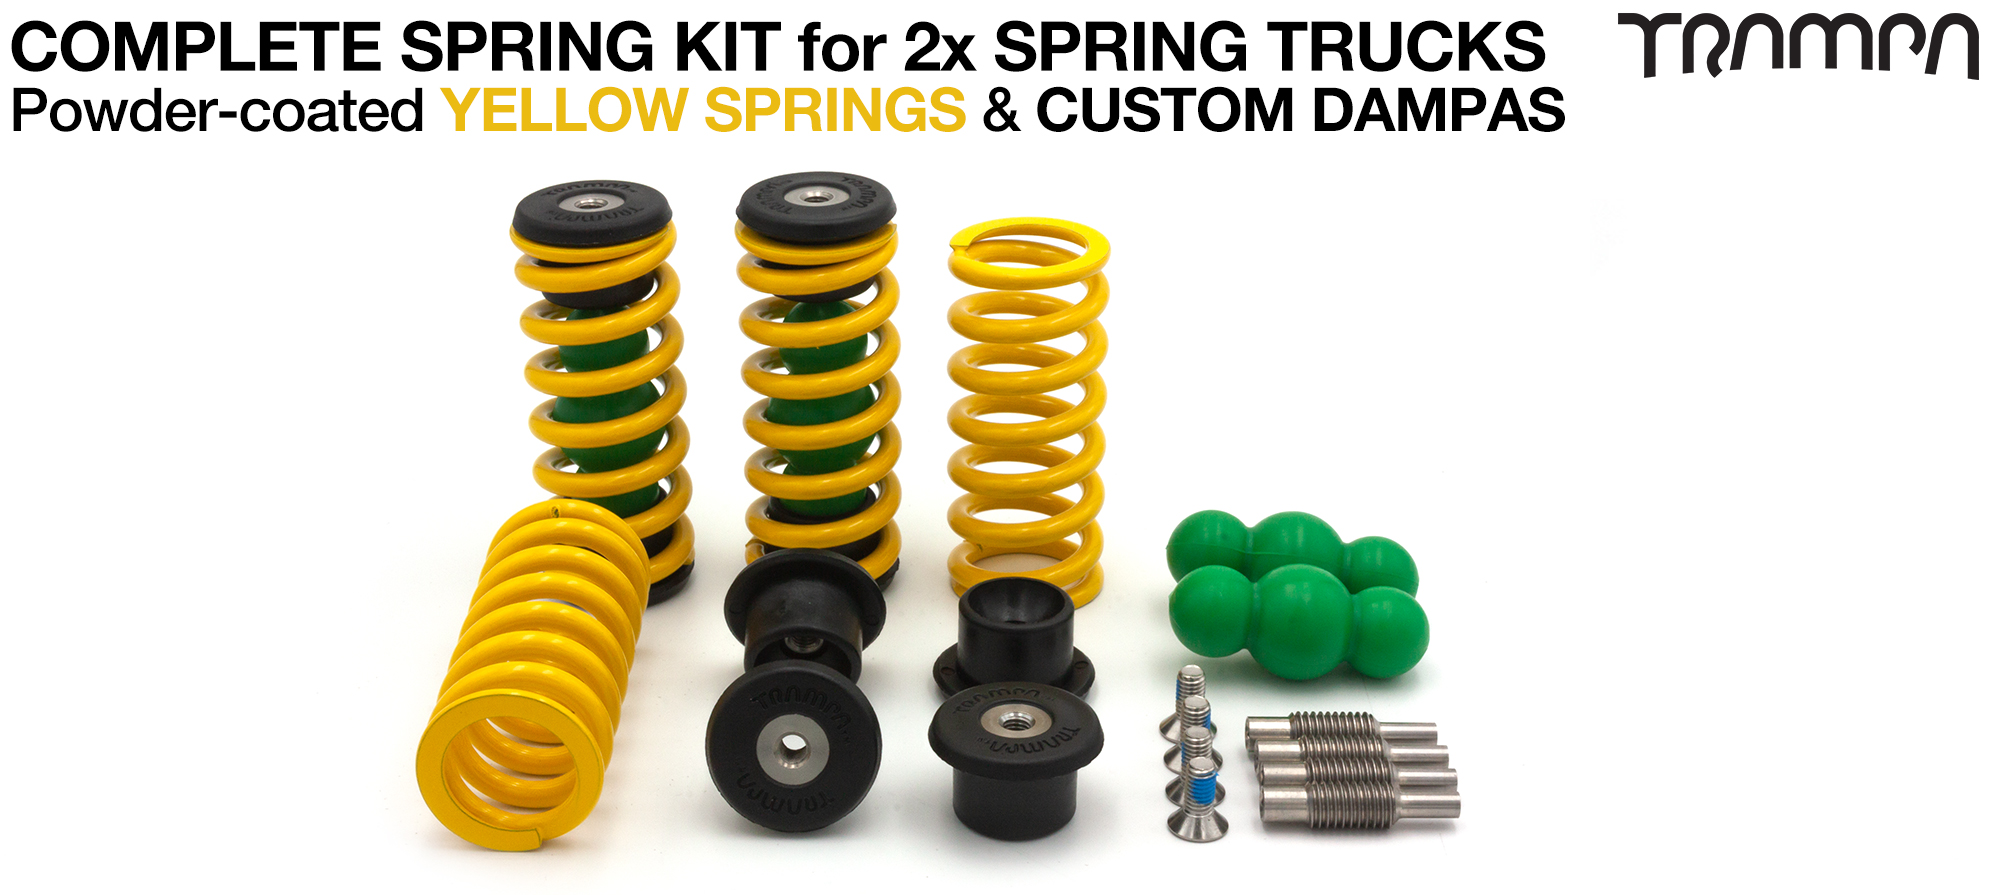 Complete Spring kit for 1x Board = 4x YELLOW Springs 4x Dampa 8x Spring Retainers 4x Spring Adjuster & 4 M5x12mm Countersunk Bolt